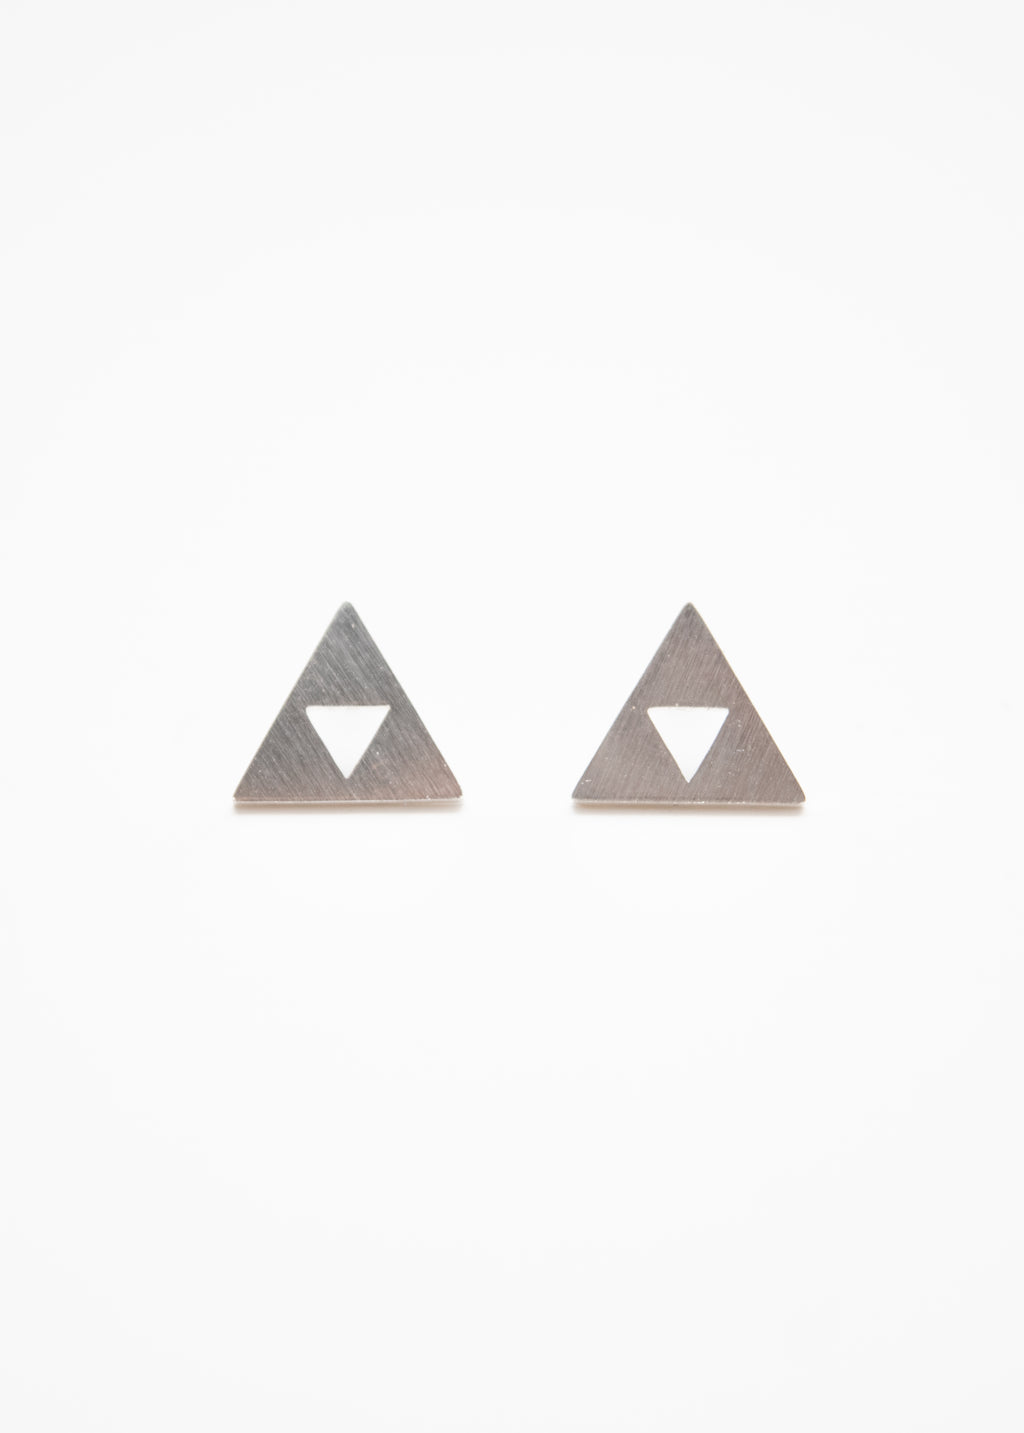 Beck & Boosh Din Studs Triangle Posts with Triangle Hole Center Silver Stainless Steel